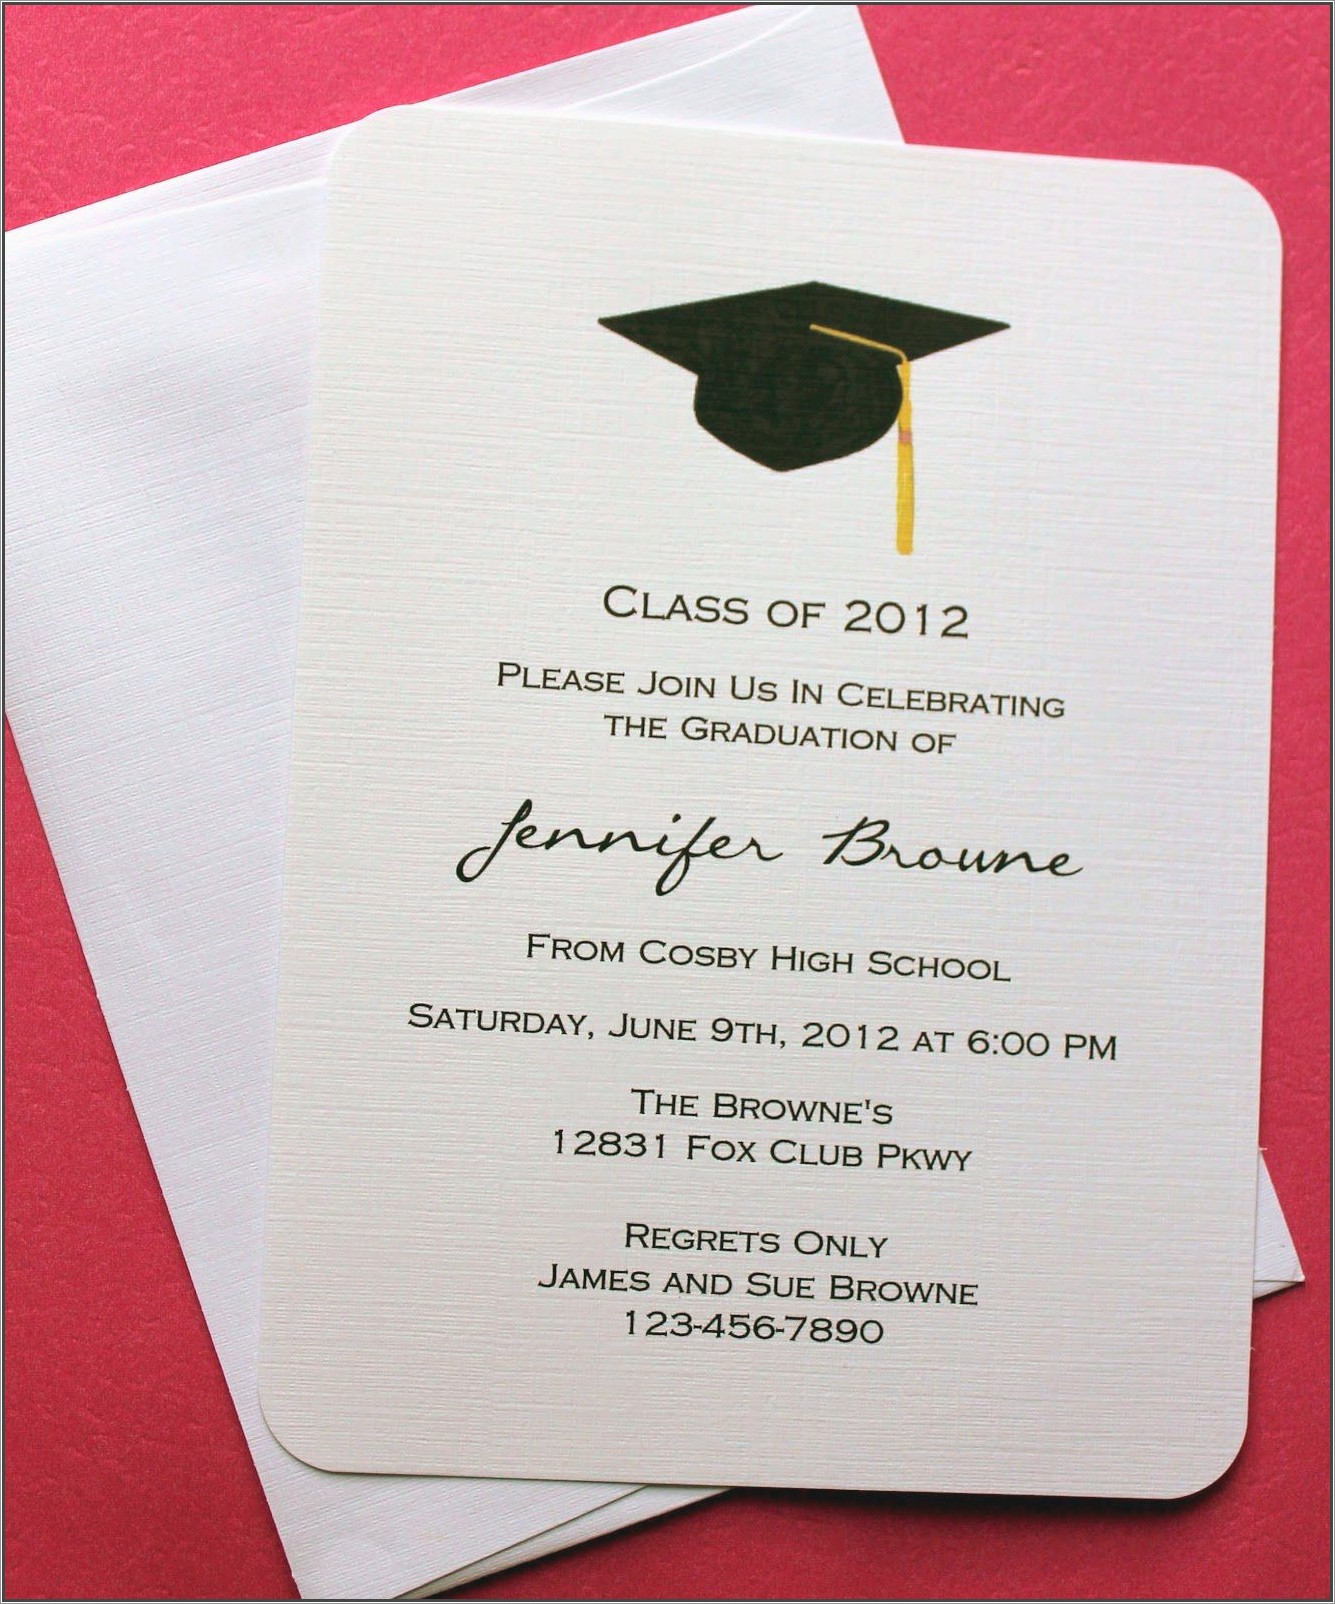 What Goes On A Graduation Invitation